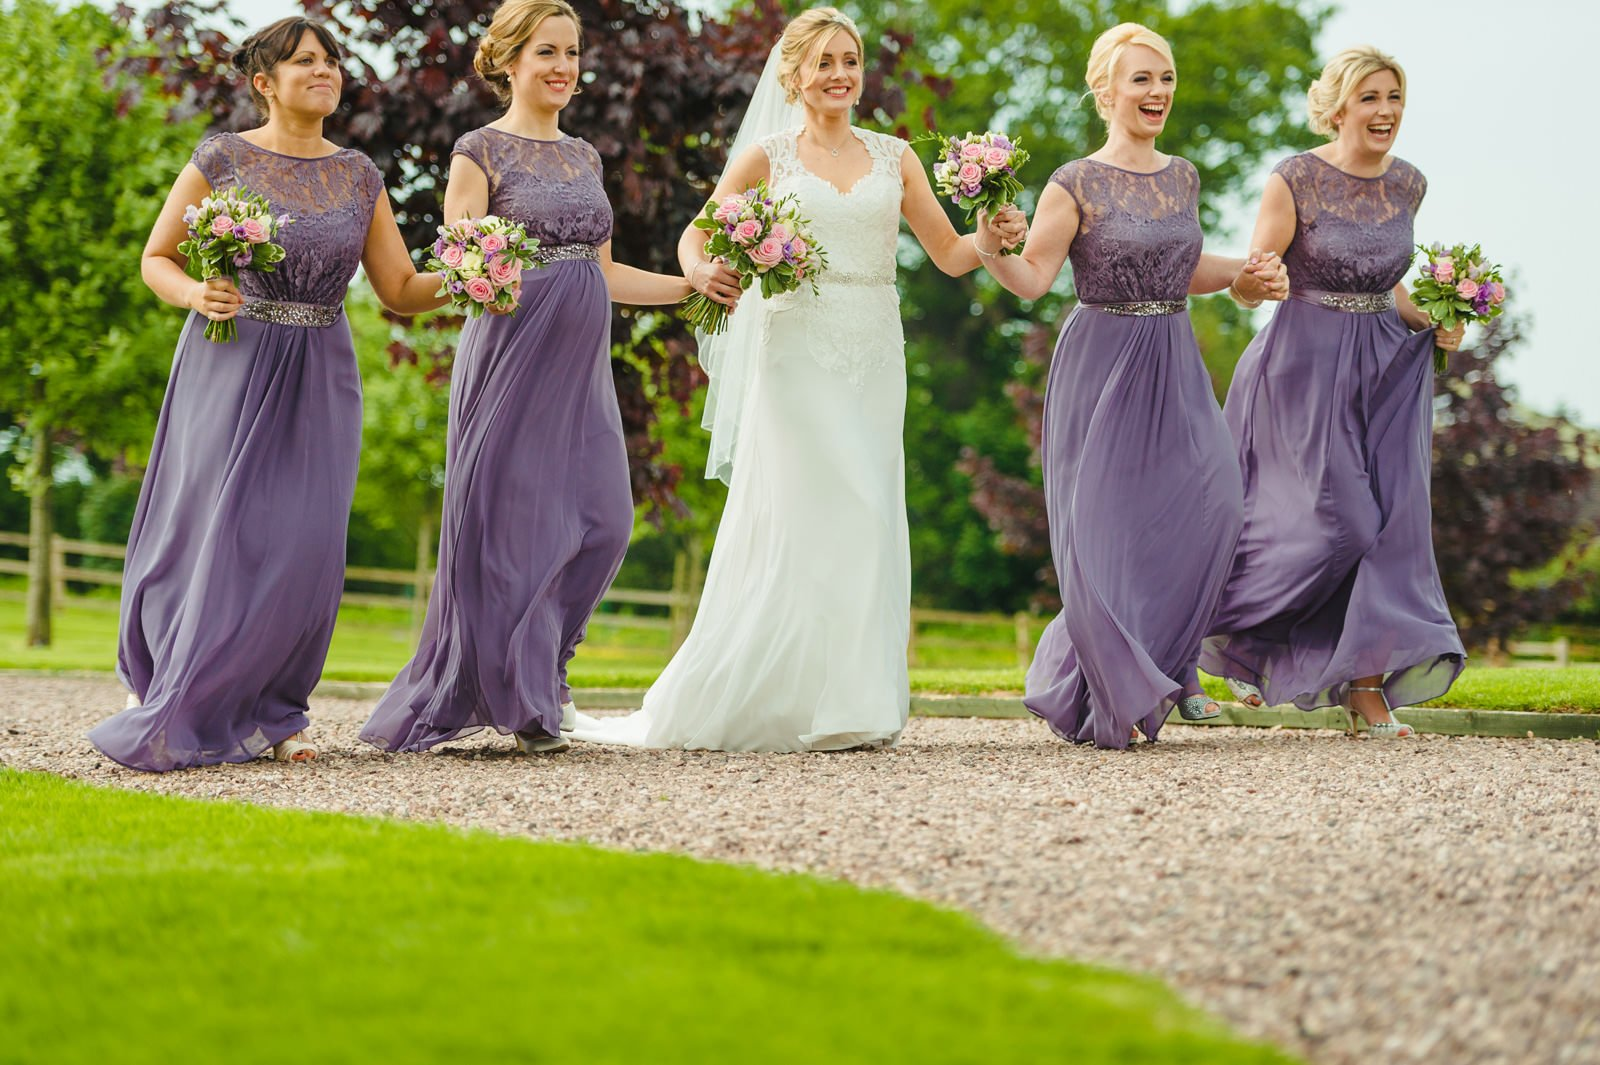 Millers Of Netley wedding, Dorrington, Shrewsbury | Emma + Ben 65